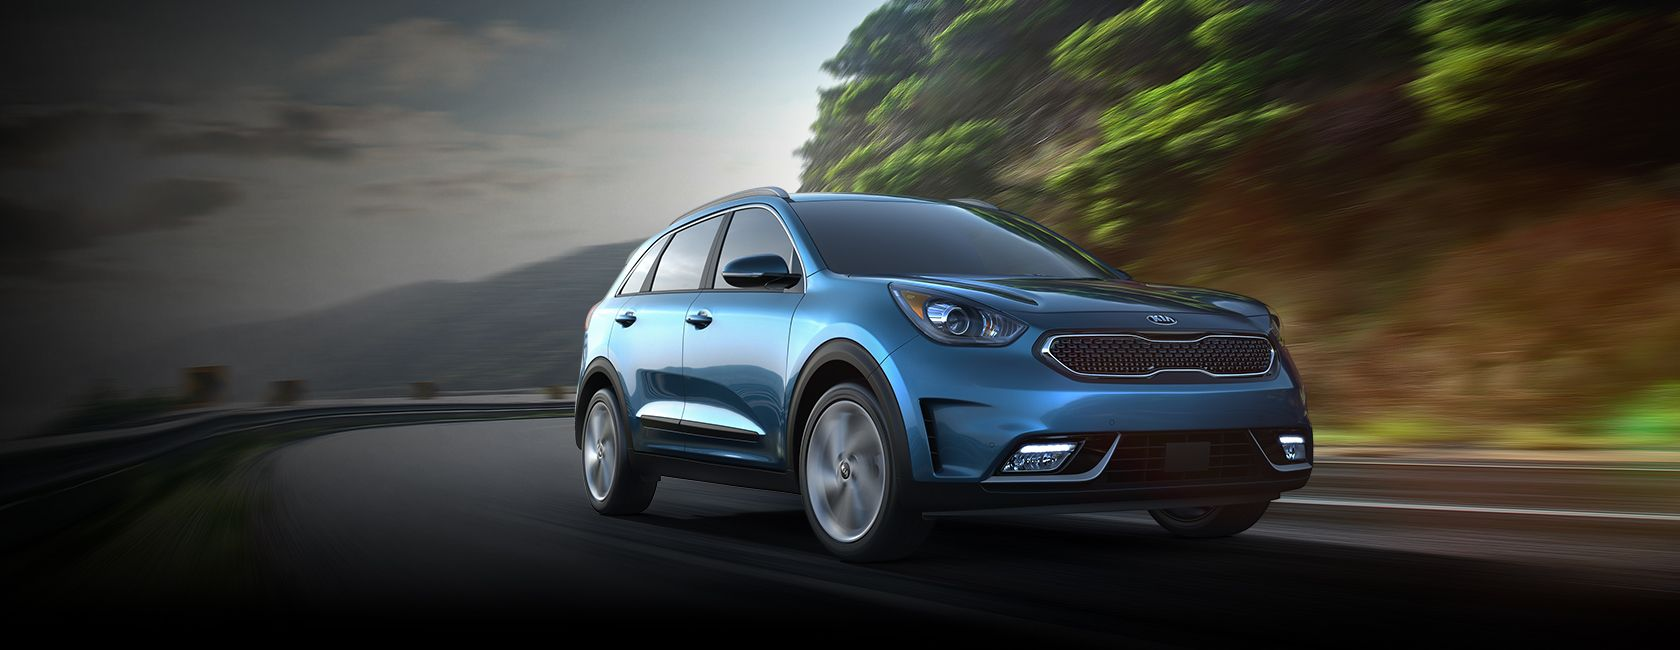 Are You An Eco Conscious Driver Here S A Look At Some Of Kia Most Por Hybrid And Ev Electricvehicles Evs Kiamotors Cars